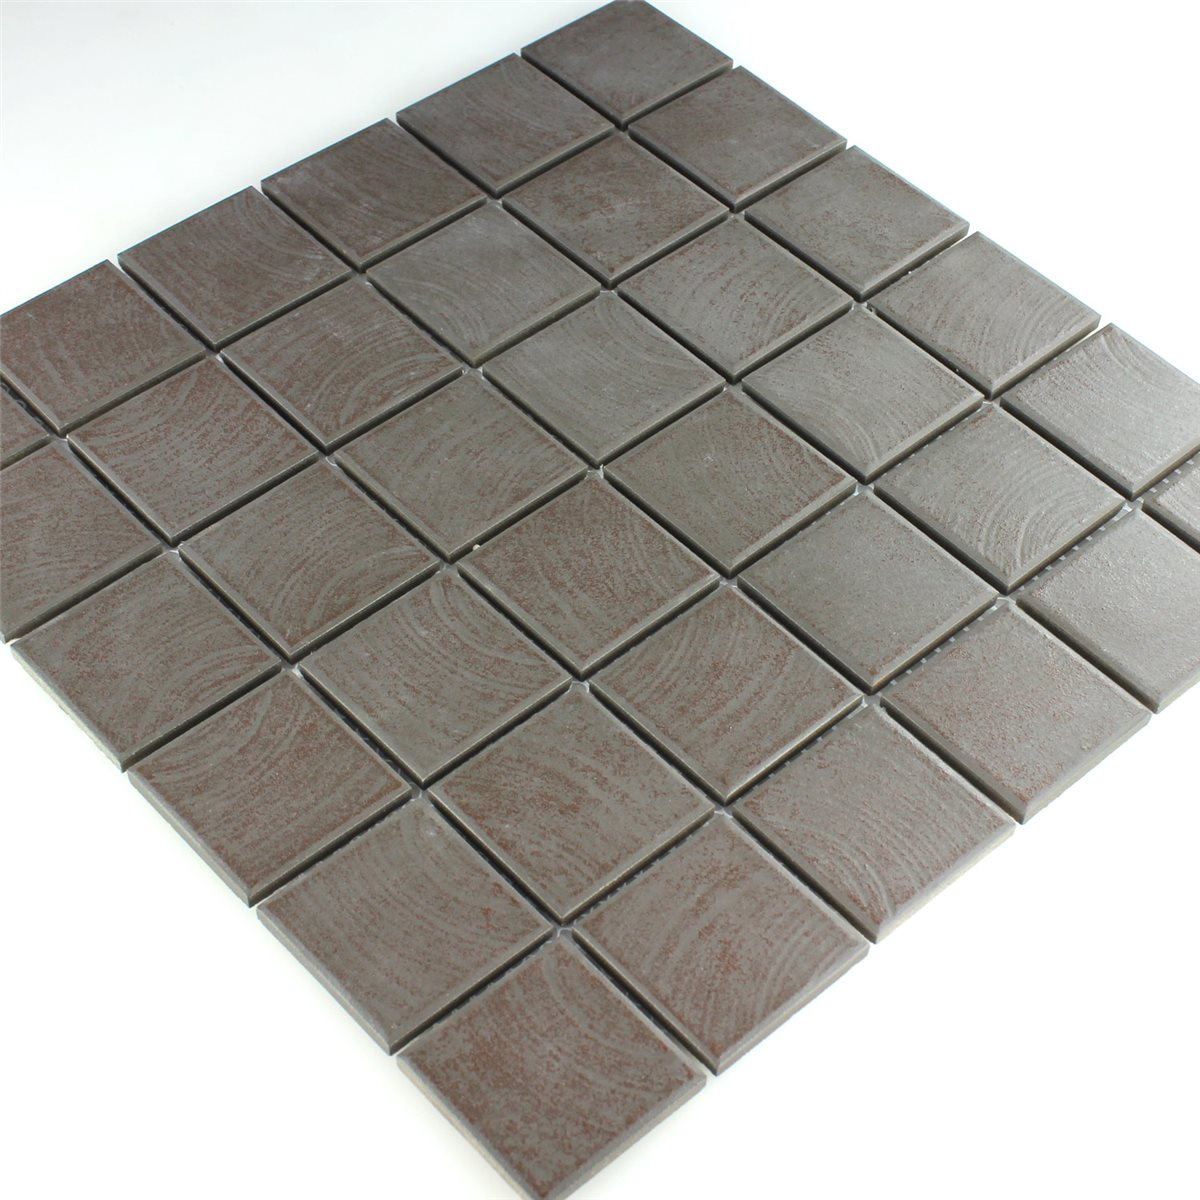 Ceramic Mosaic Tiles Non Slip Brown Structured